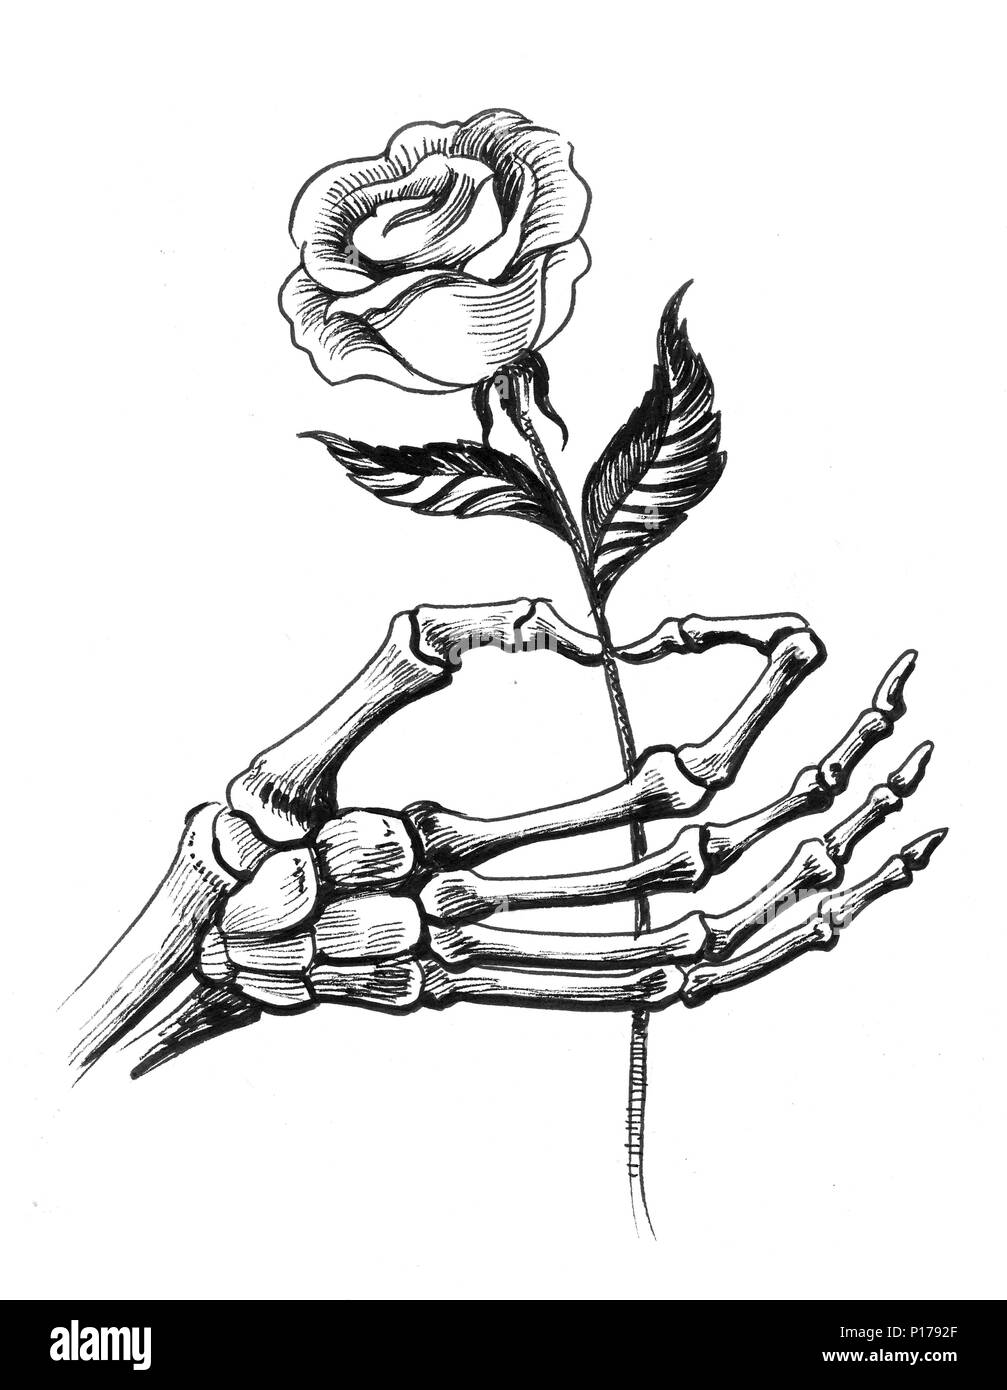 Hand Drawings Roses And Skulls: Skeleton Hand With A White Rose Flower. Ink Black And